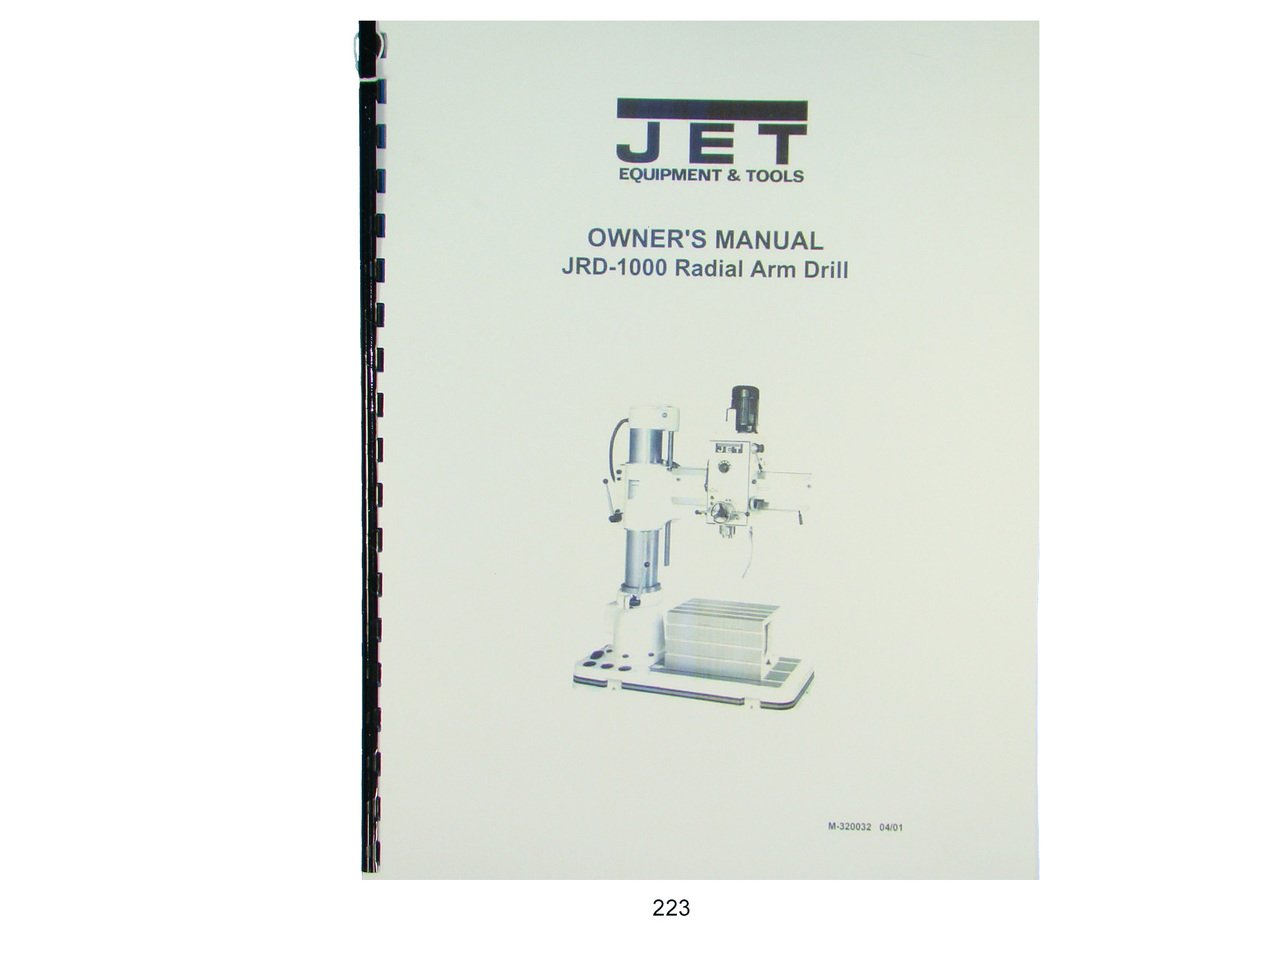 Jet JRD-1000 Radial Arm Drill Press Owners Manual: Jet: Amazon.com: Books